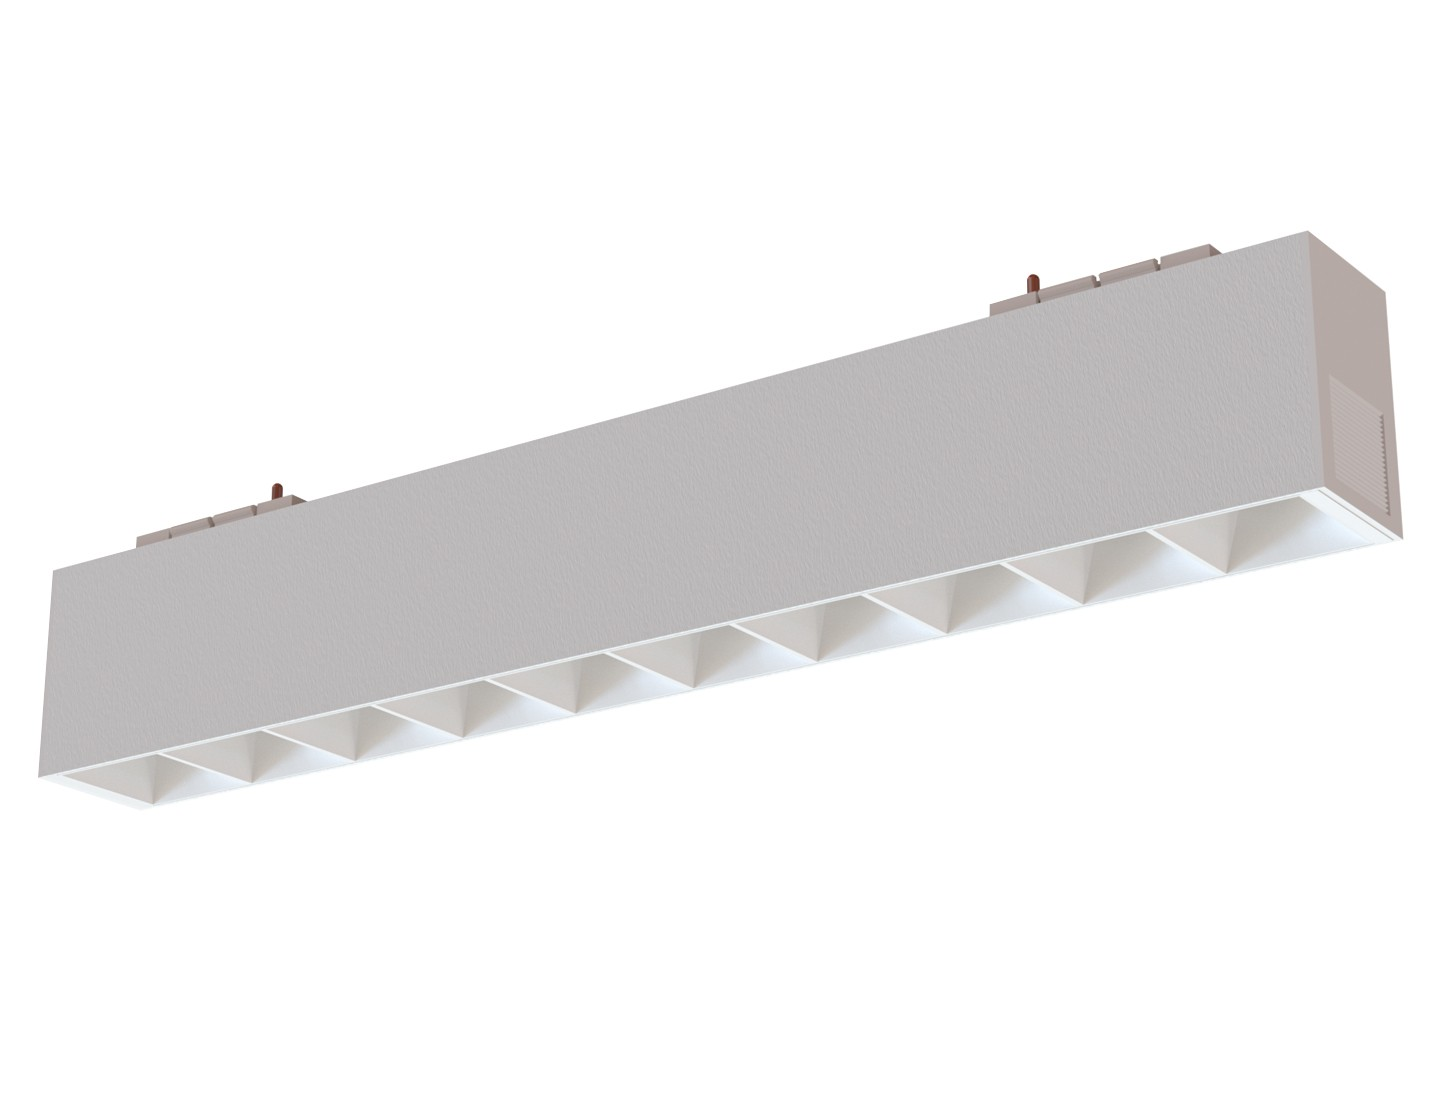 Downlight Directed Illuminated Module (Louvered)